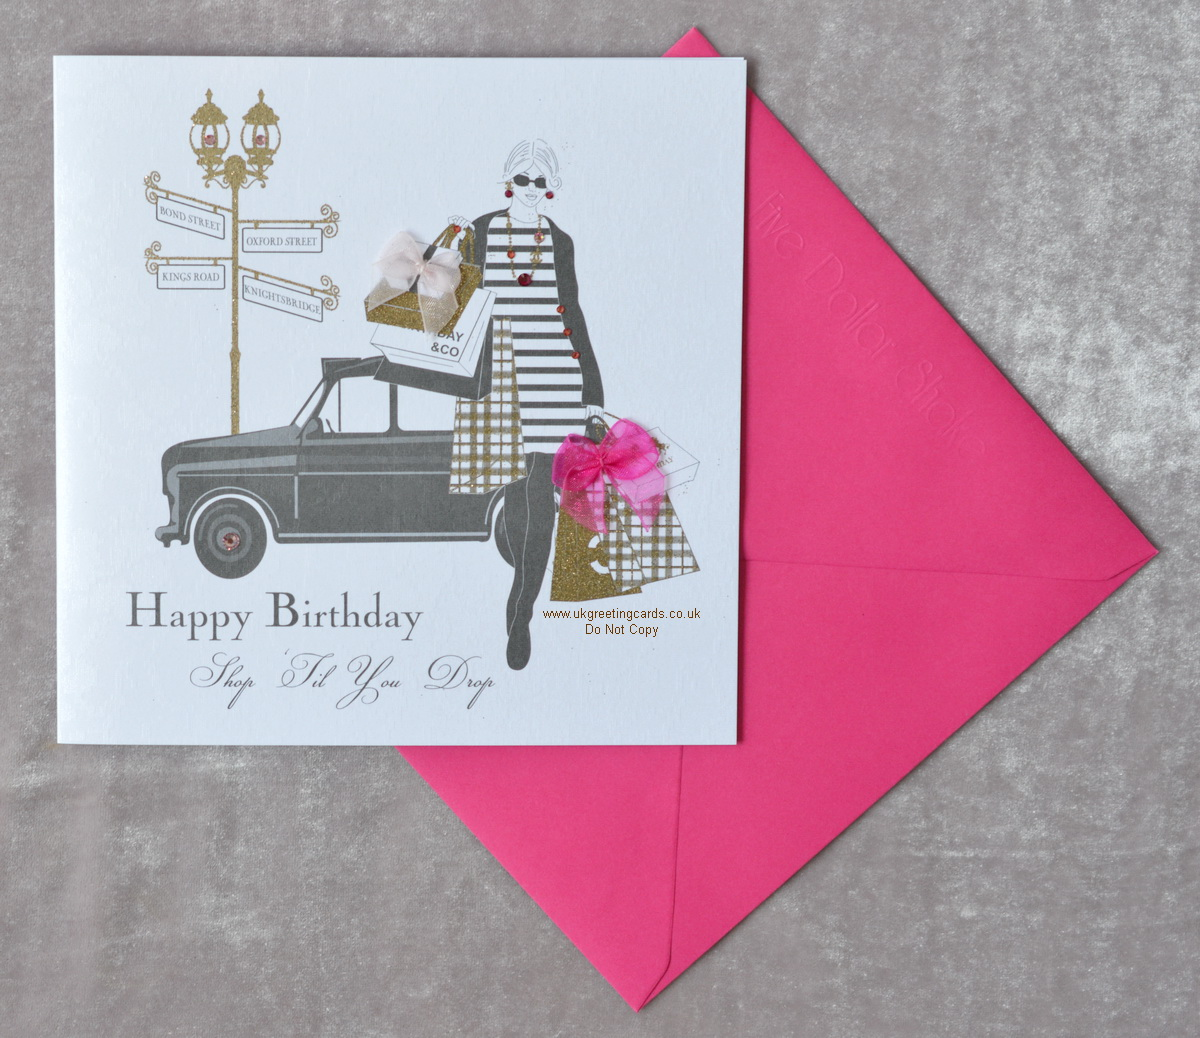 Uk greeting cards directory stuuning handmade birthday cards for women on the card there is a london taxi picking up uk greeting cards m4hsunfo